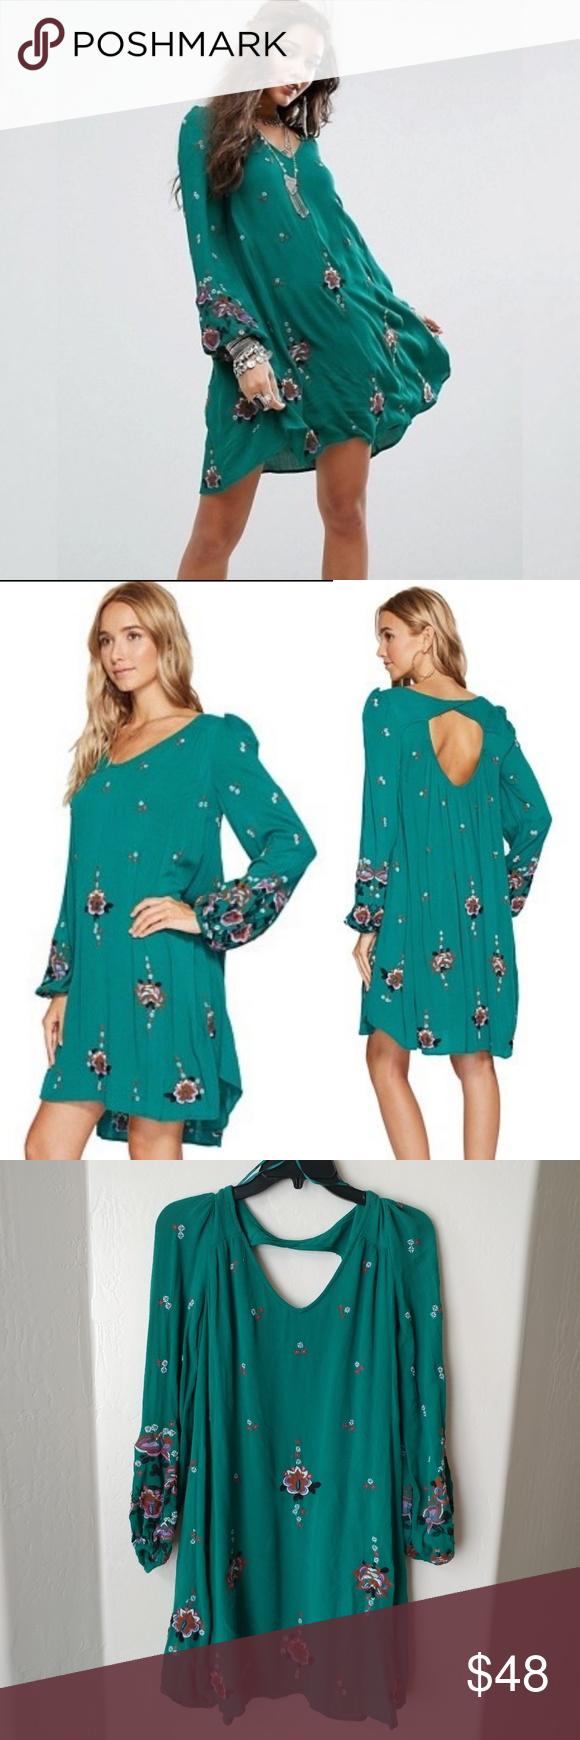 """65cd2c5a64 Free People Oxford Embroidered Mini Dress Free People Dress """"Oxford  Embroidered Mini"""" – absolutely"""